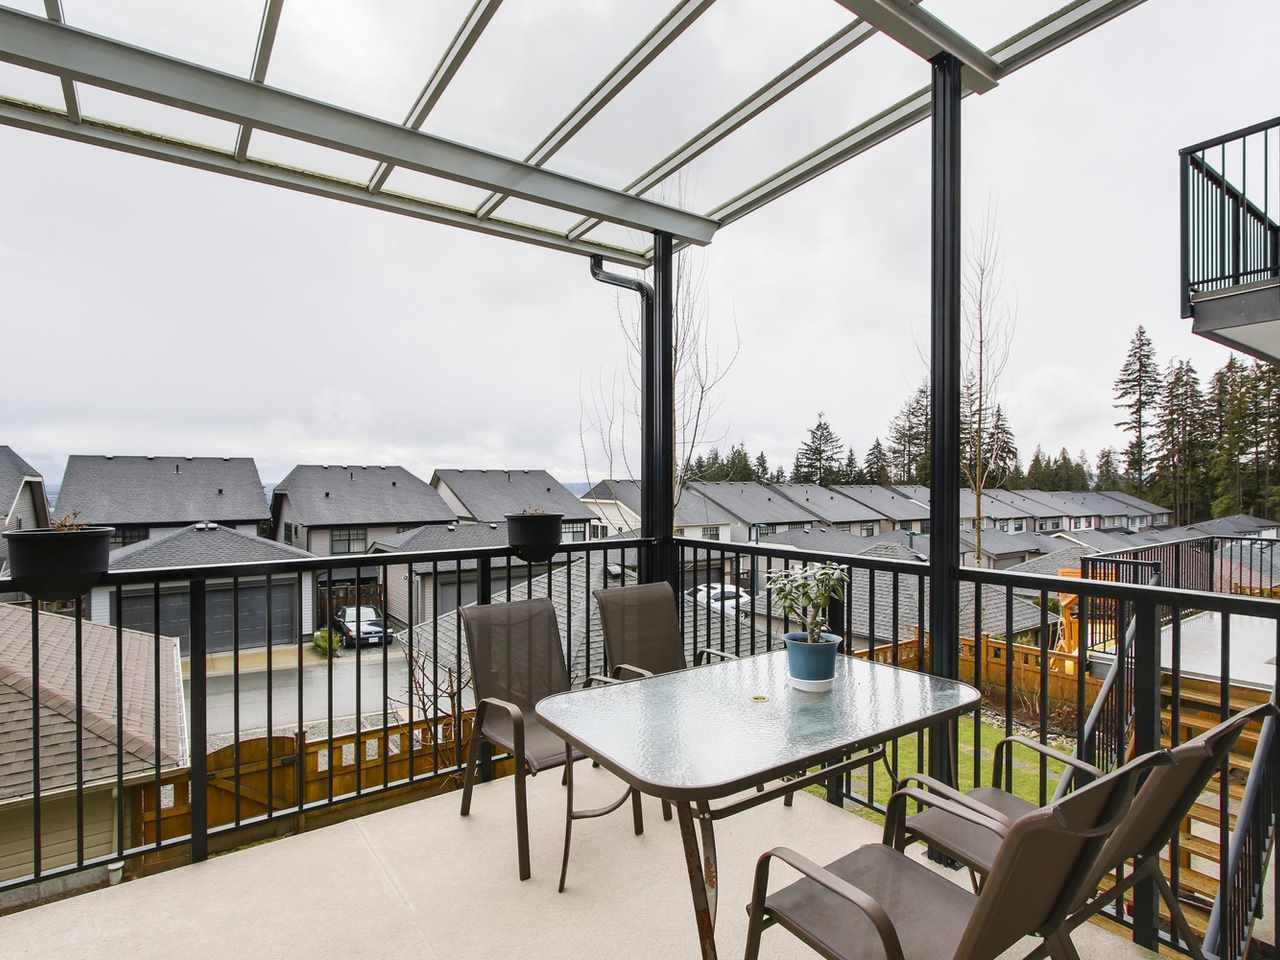 Photo 18: 3482 GALLOWAY Avenue in Coquitlam: Burke Mountain House for sale : MLS® # R2139376